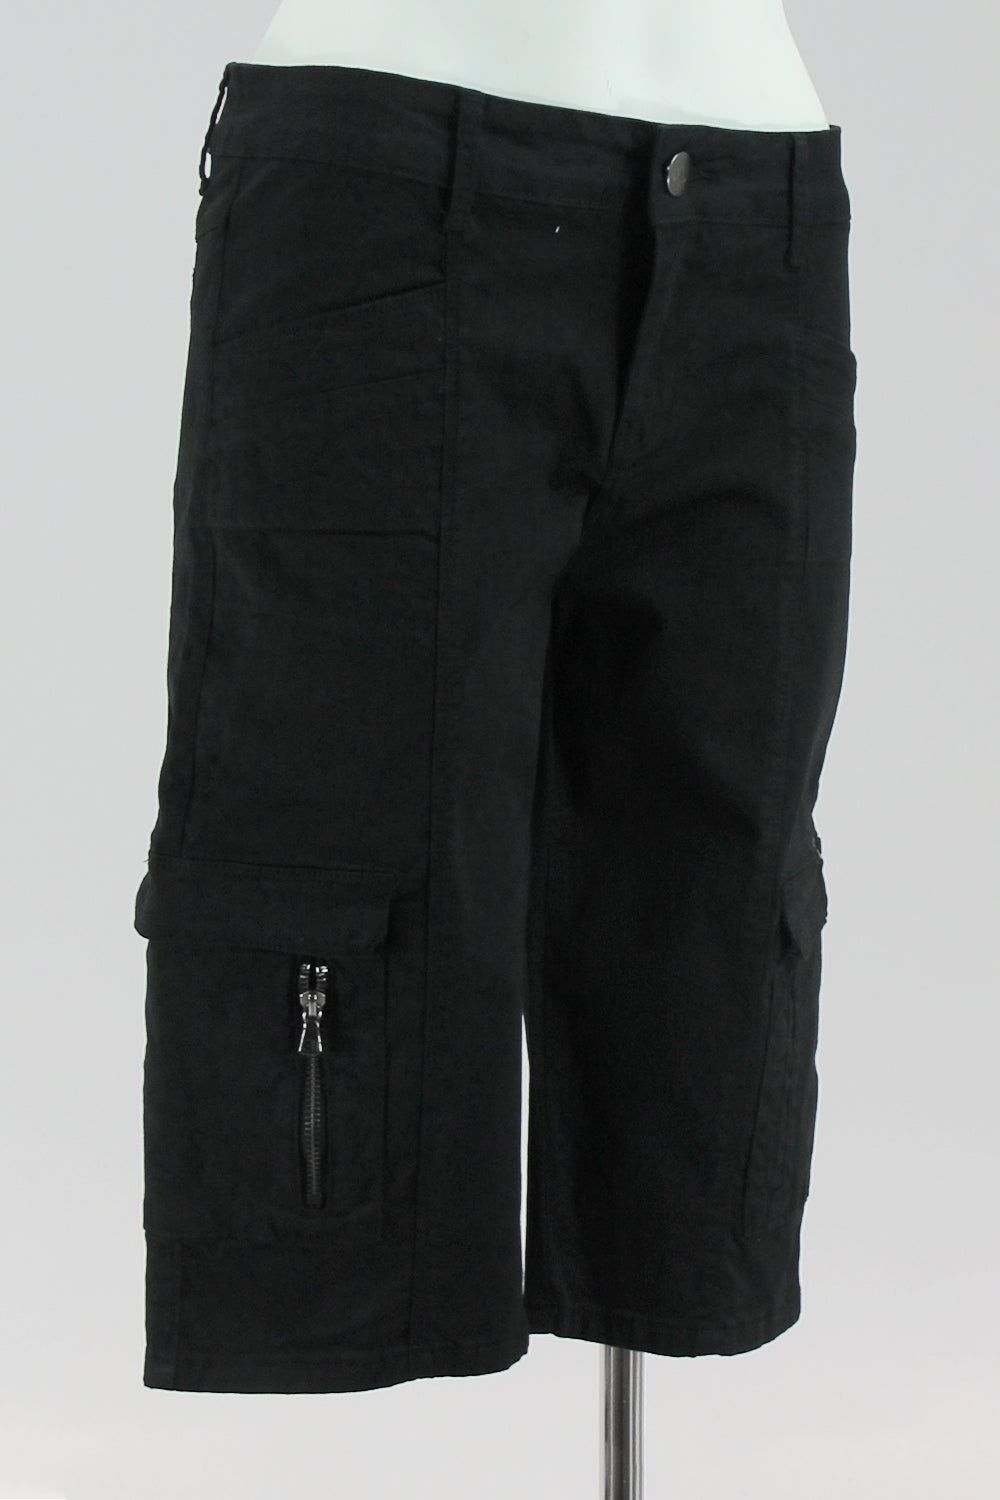 New London - Ramsey Cargo Shorts - Black - Pizazz Boutique